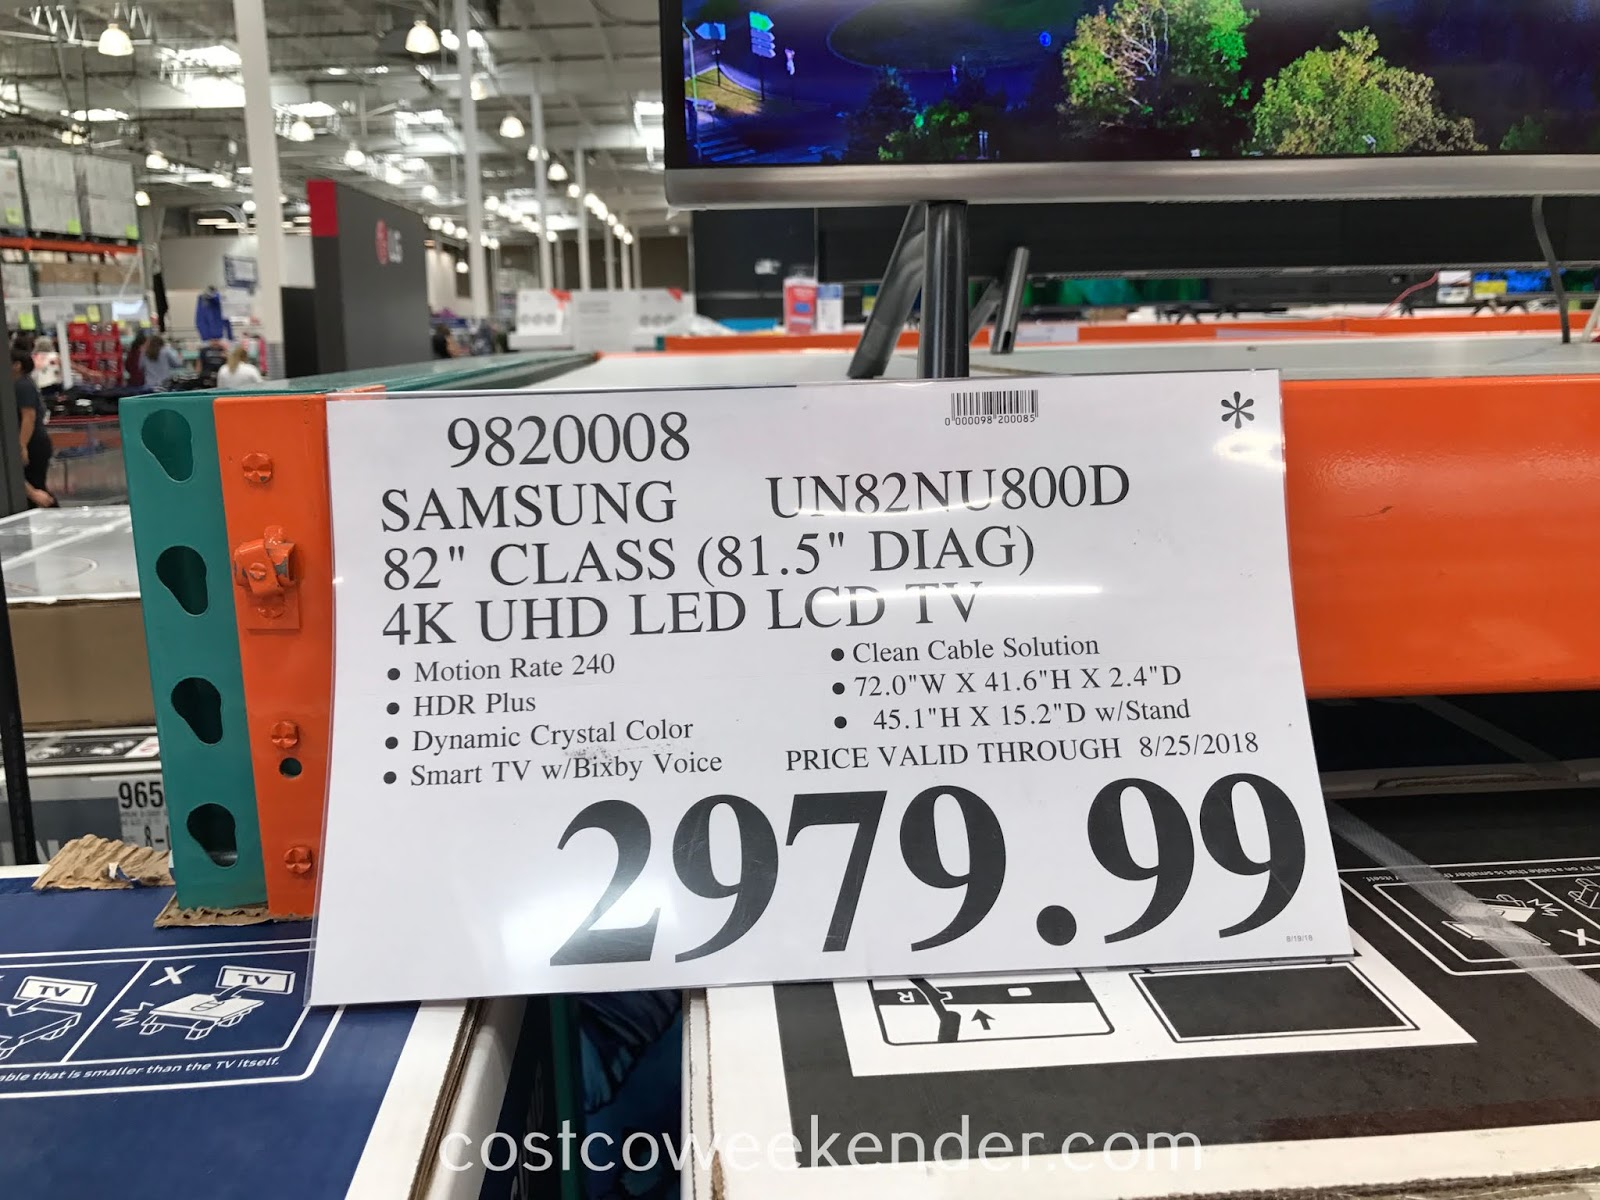 Deal for the Samsung UN82NU800D 82-inch 4K UHD TV at Costco